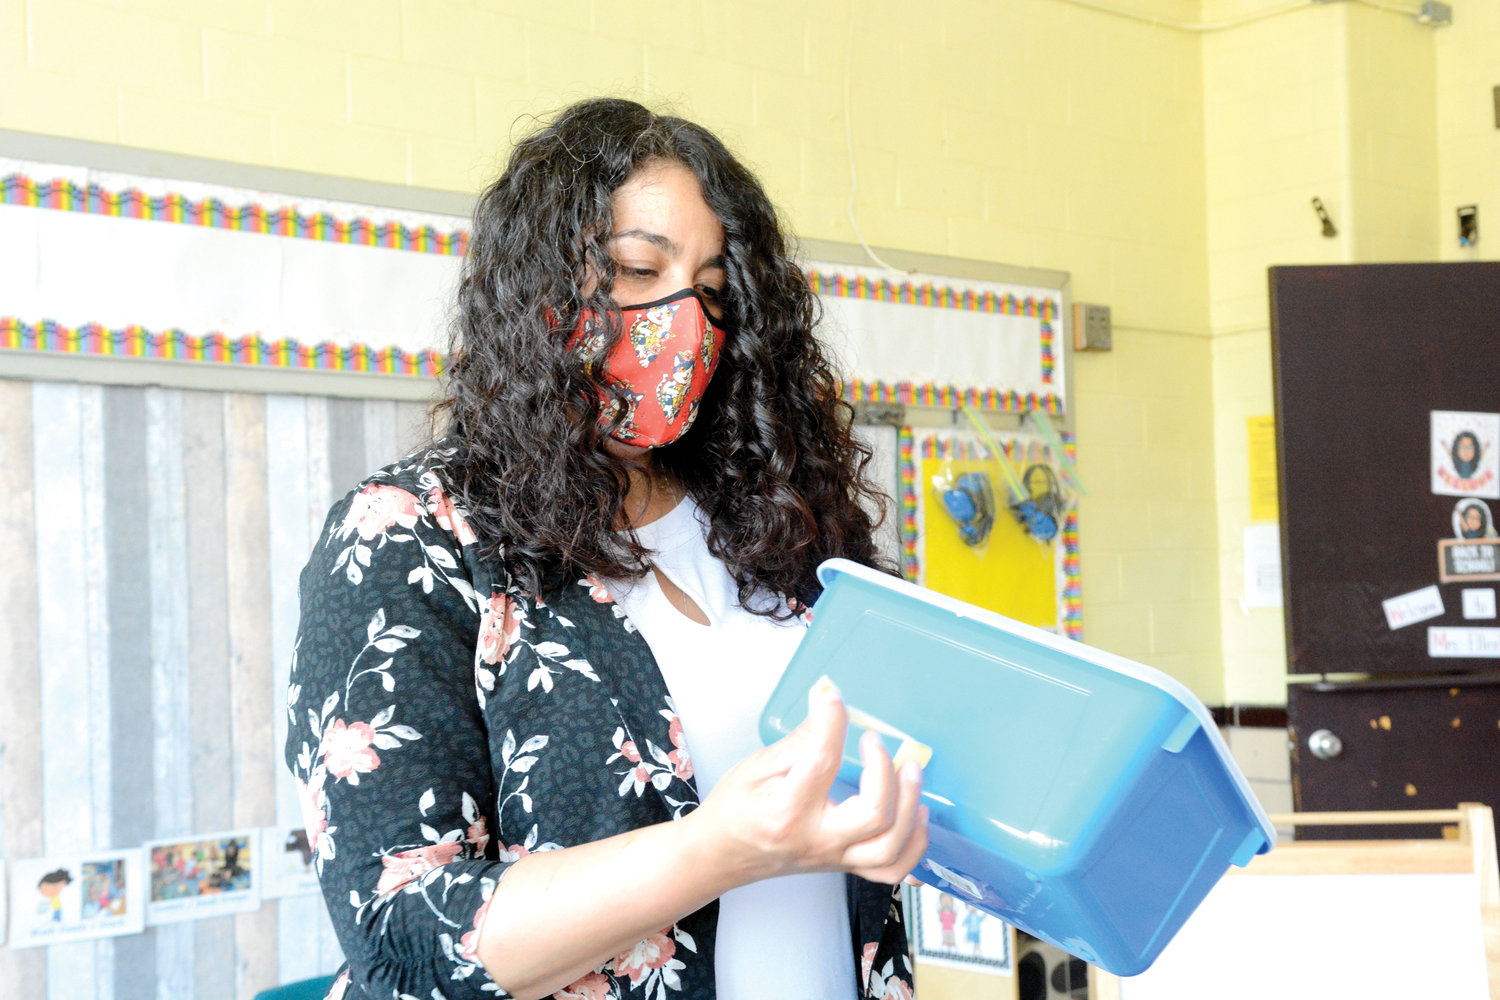 Johanna Ellerbe, pre-k director, explained changes in the setup of a pre-k classroom during a July 22 tour of the retrofitted Immaculate Conception School on East Gun Hill Road, the Bronx.